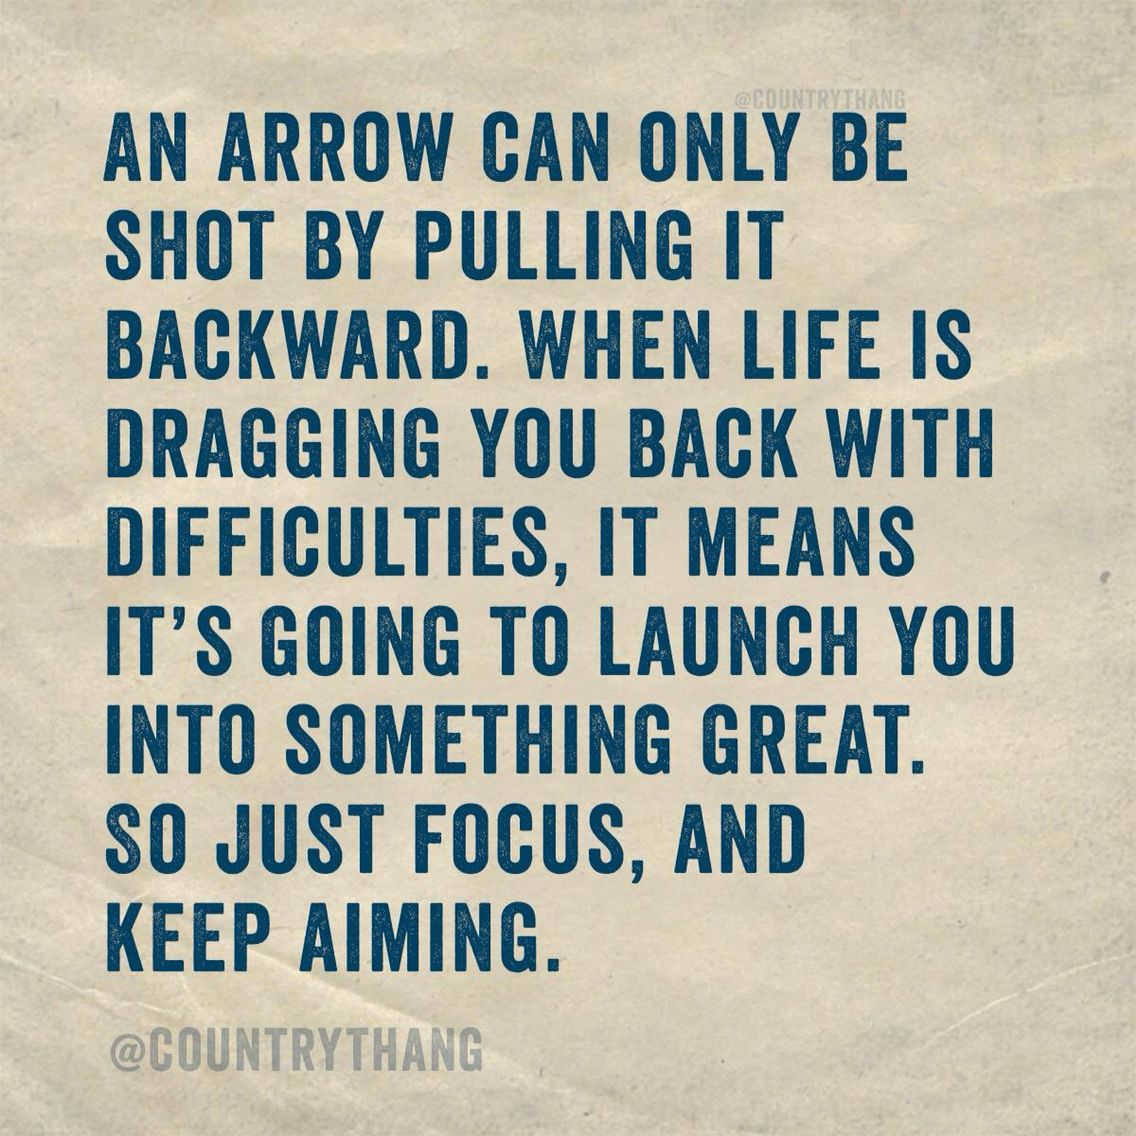 Arrow Quotes Life An Arrow Can Only Be Shot  Quotes  Pinterest  Arrow And Wisdom